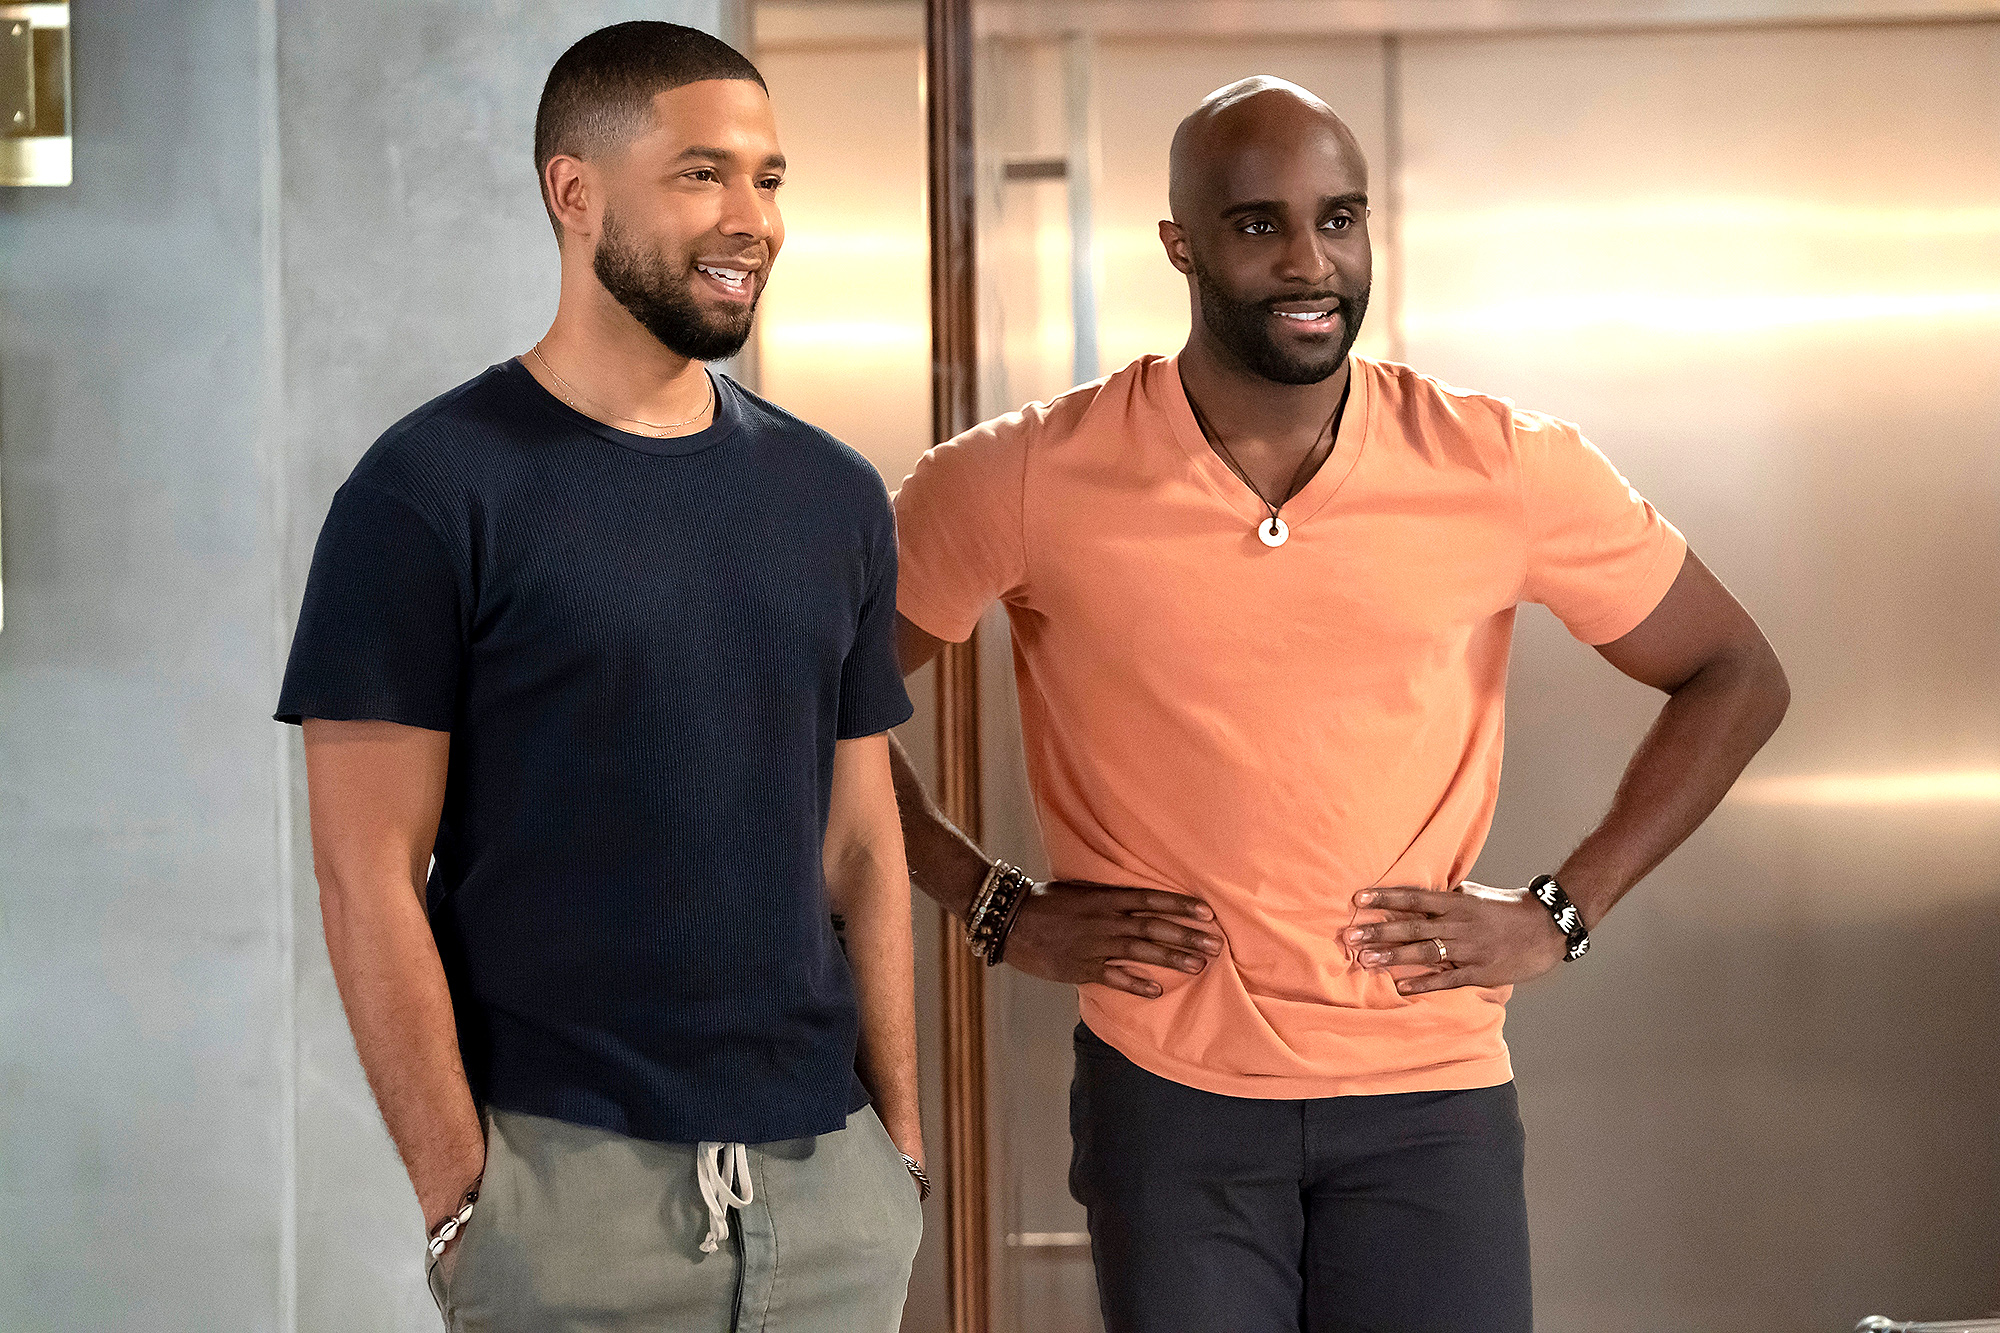 Jussie Smollett and Toby Onwumere